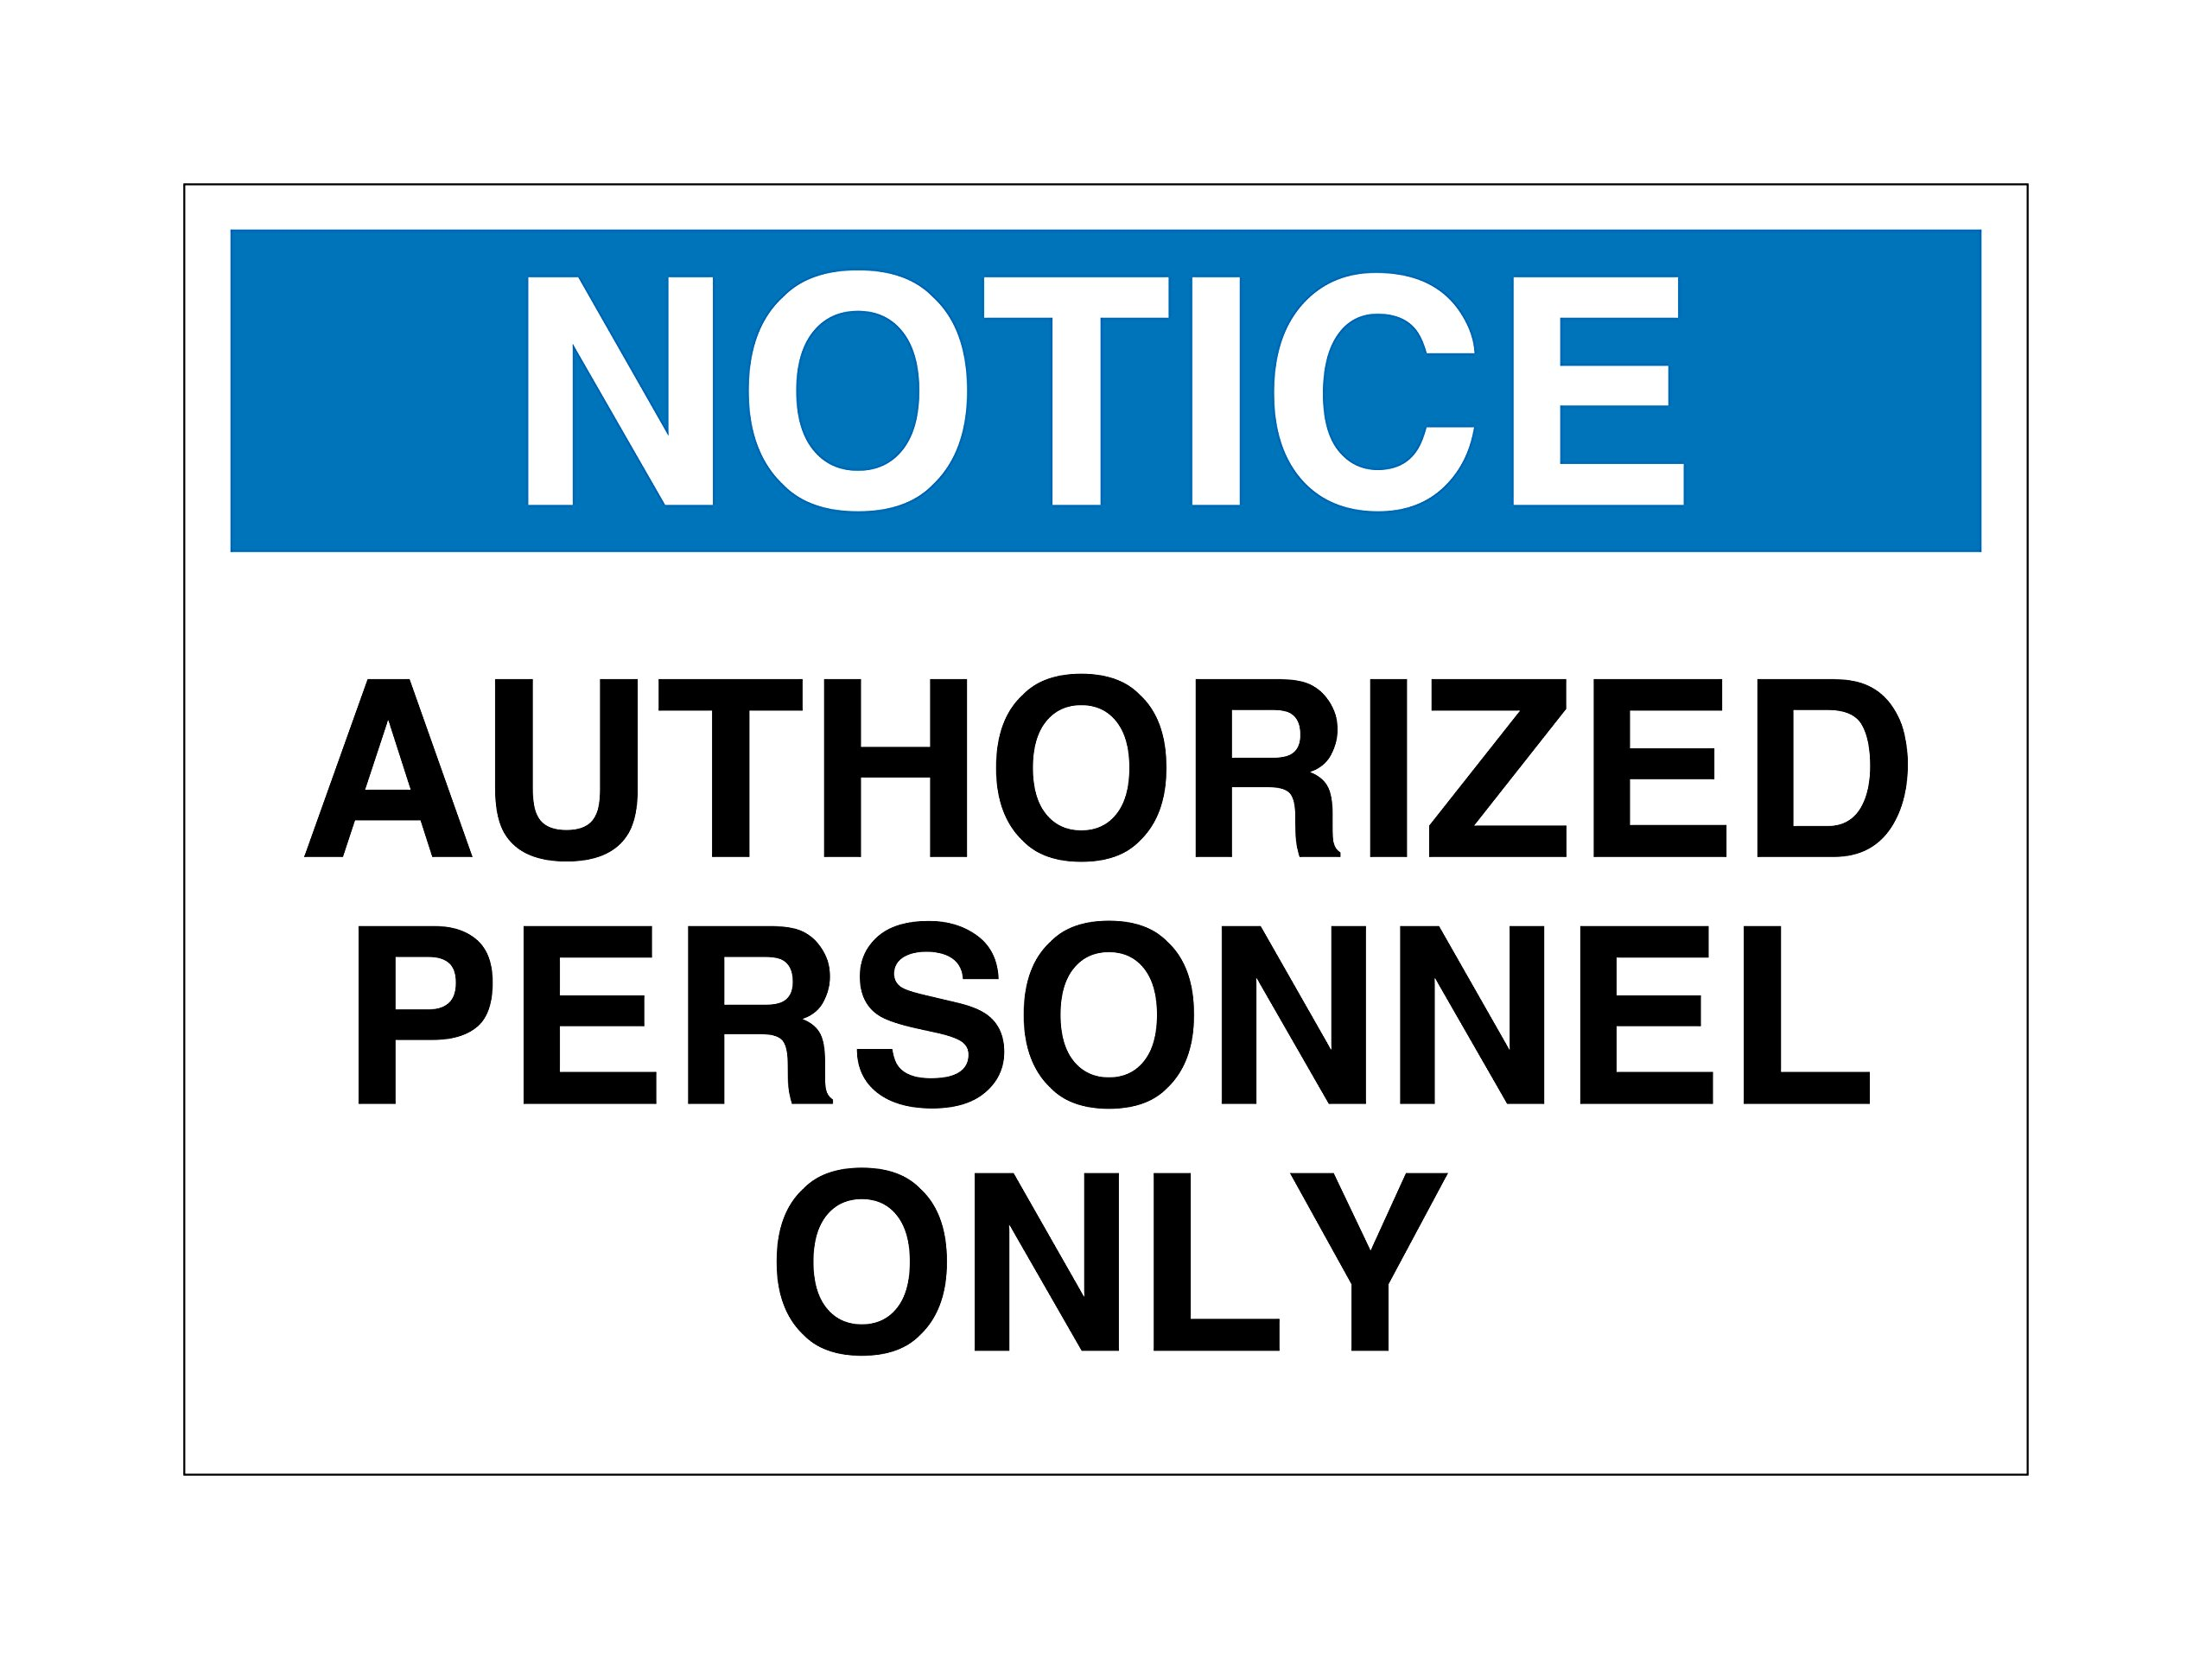 """Supply360 Vinyl Adhesive Workplace Notice Authorized Personnel ONLY Sign- 7"""" x 10"""", White/Blue/Black, Proudly Made in The USA, Great Resistance to Water and Most Chemicals"""